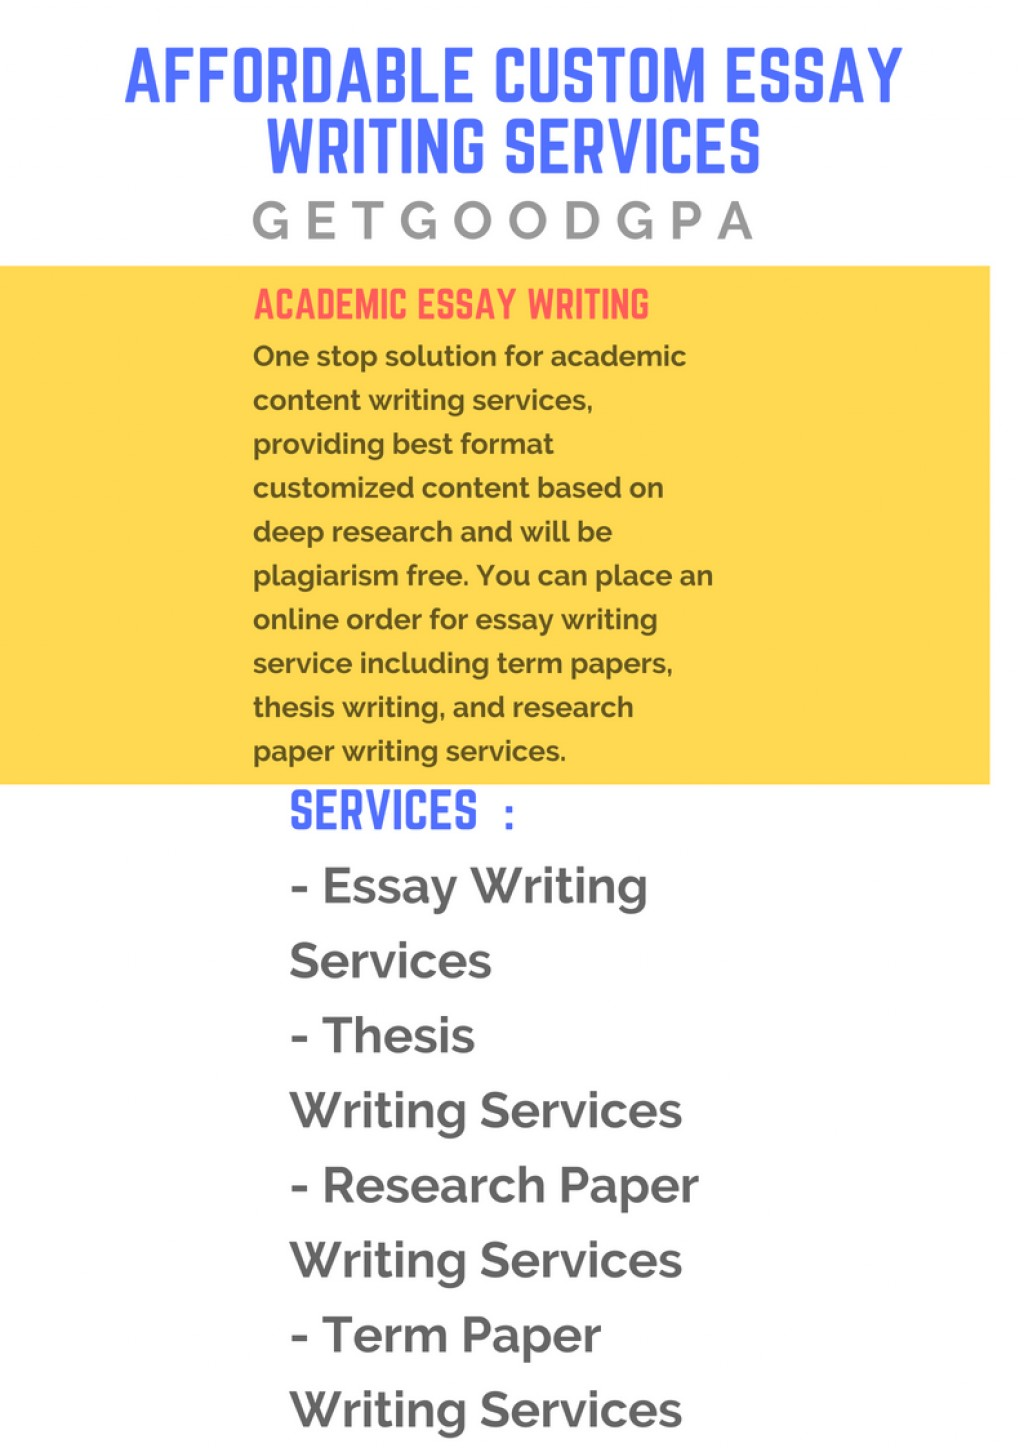 002 Research Paper Writing Services Archaicawful In Pakistan Mumbai Academic India Large